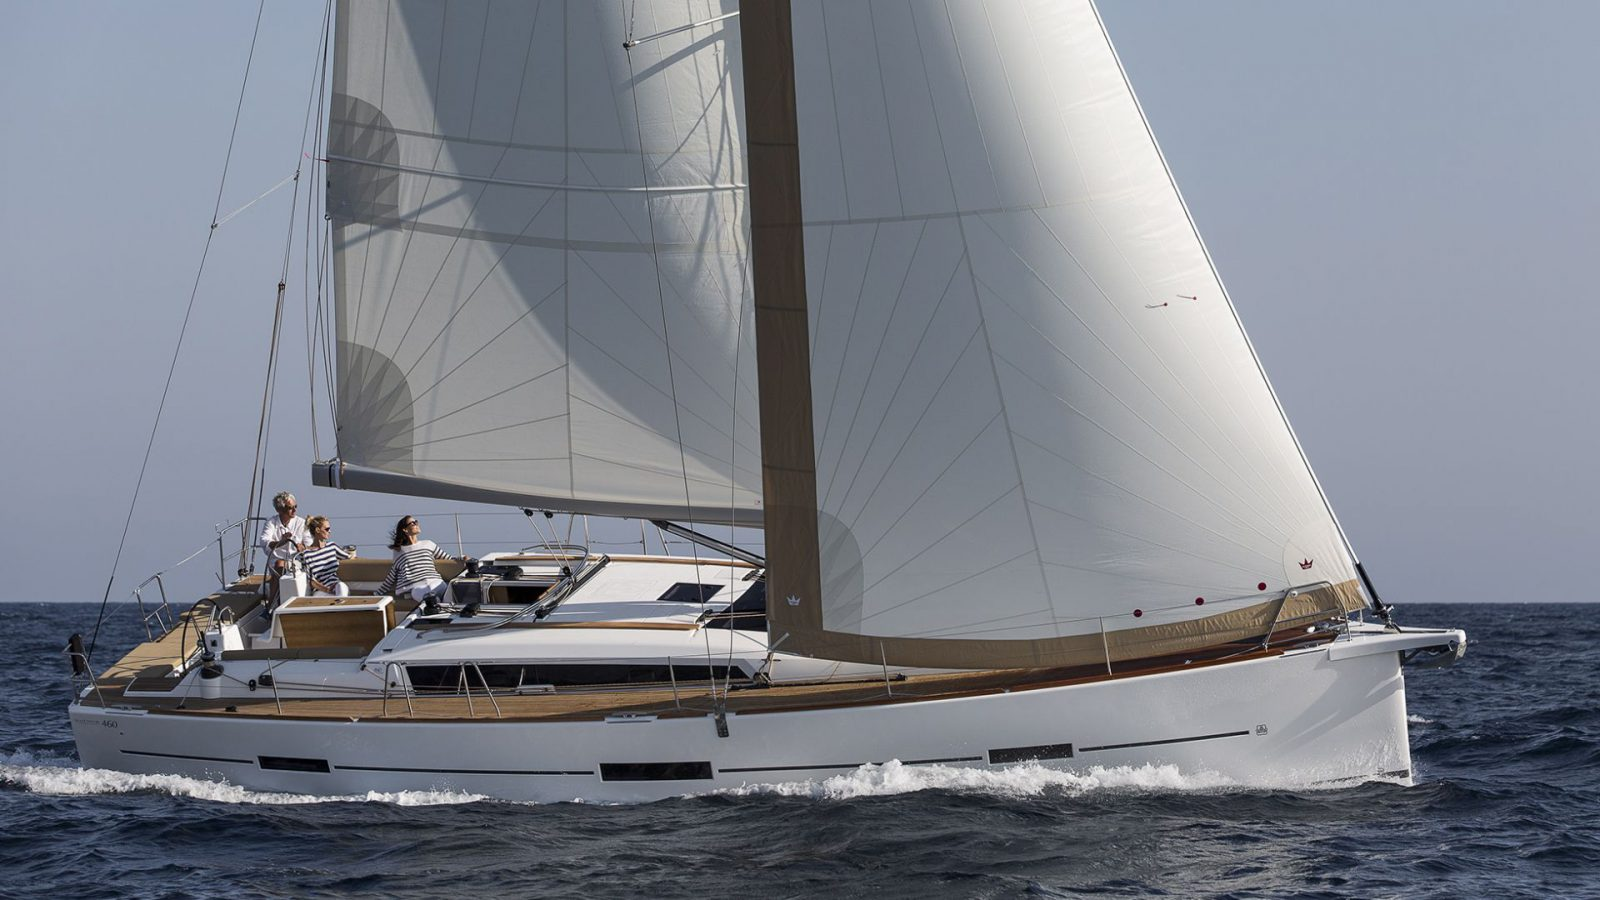 Fairview Sailing announce new yachts to their Port Hamble Marine fleet